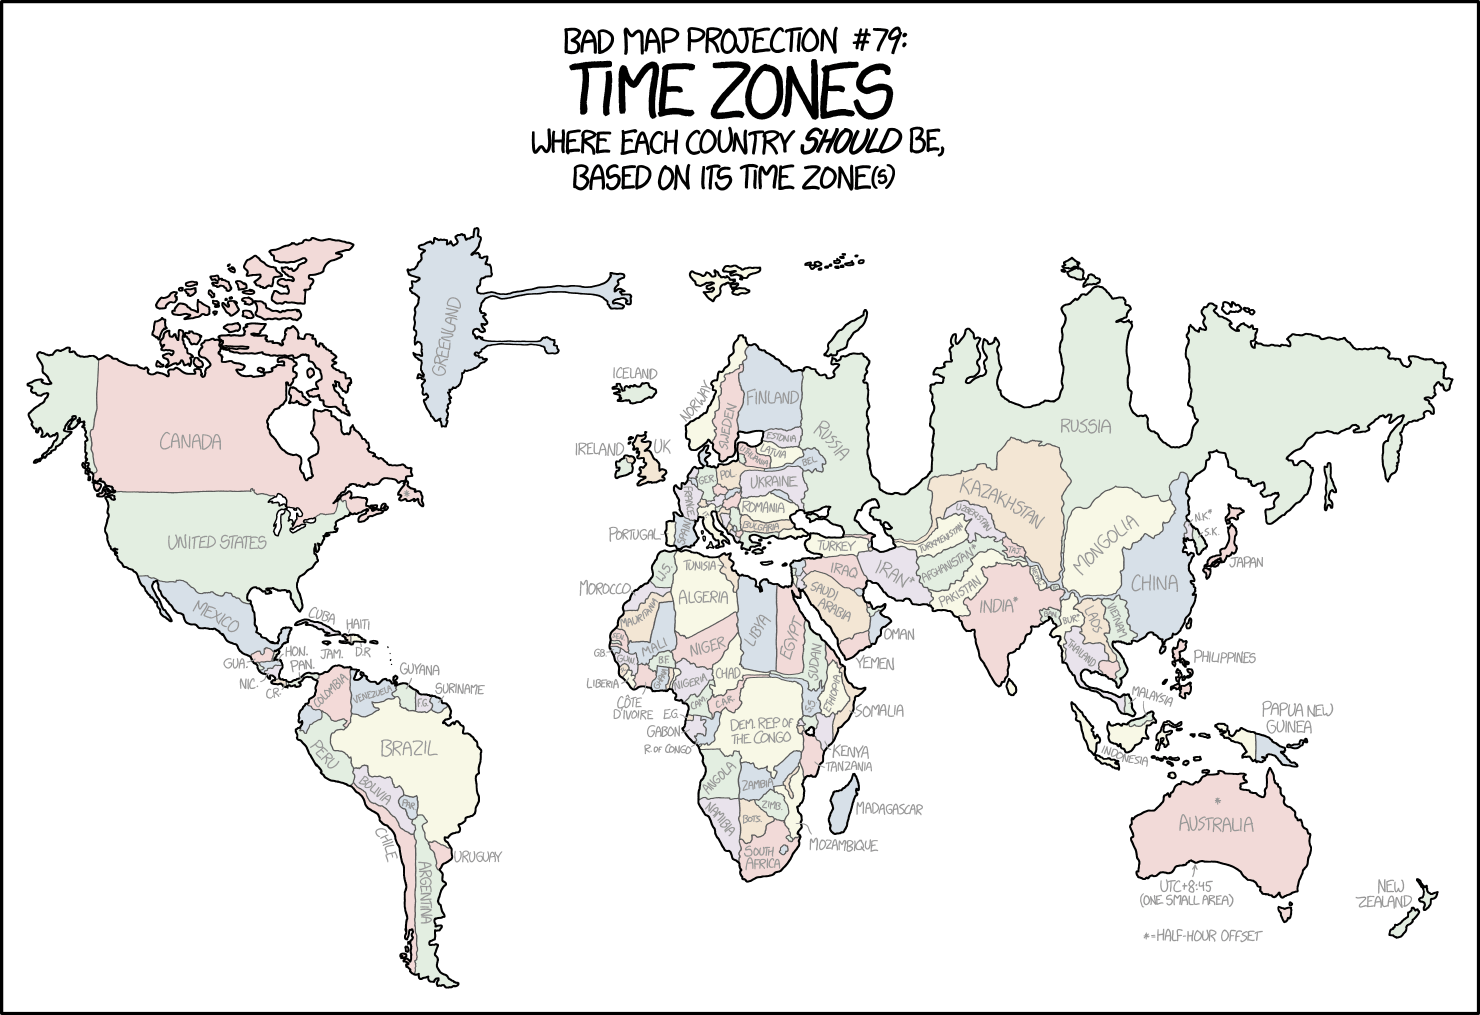 xkcd: Bad Map Projection: Time Zones